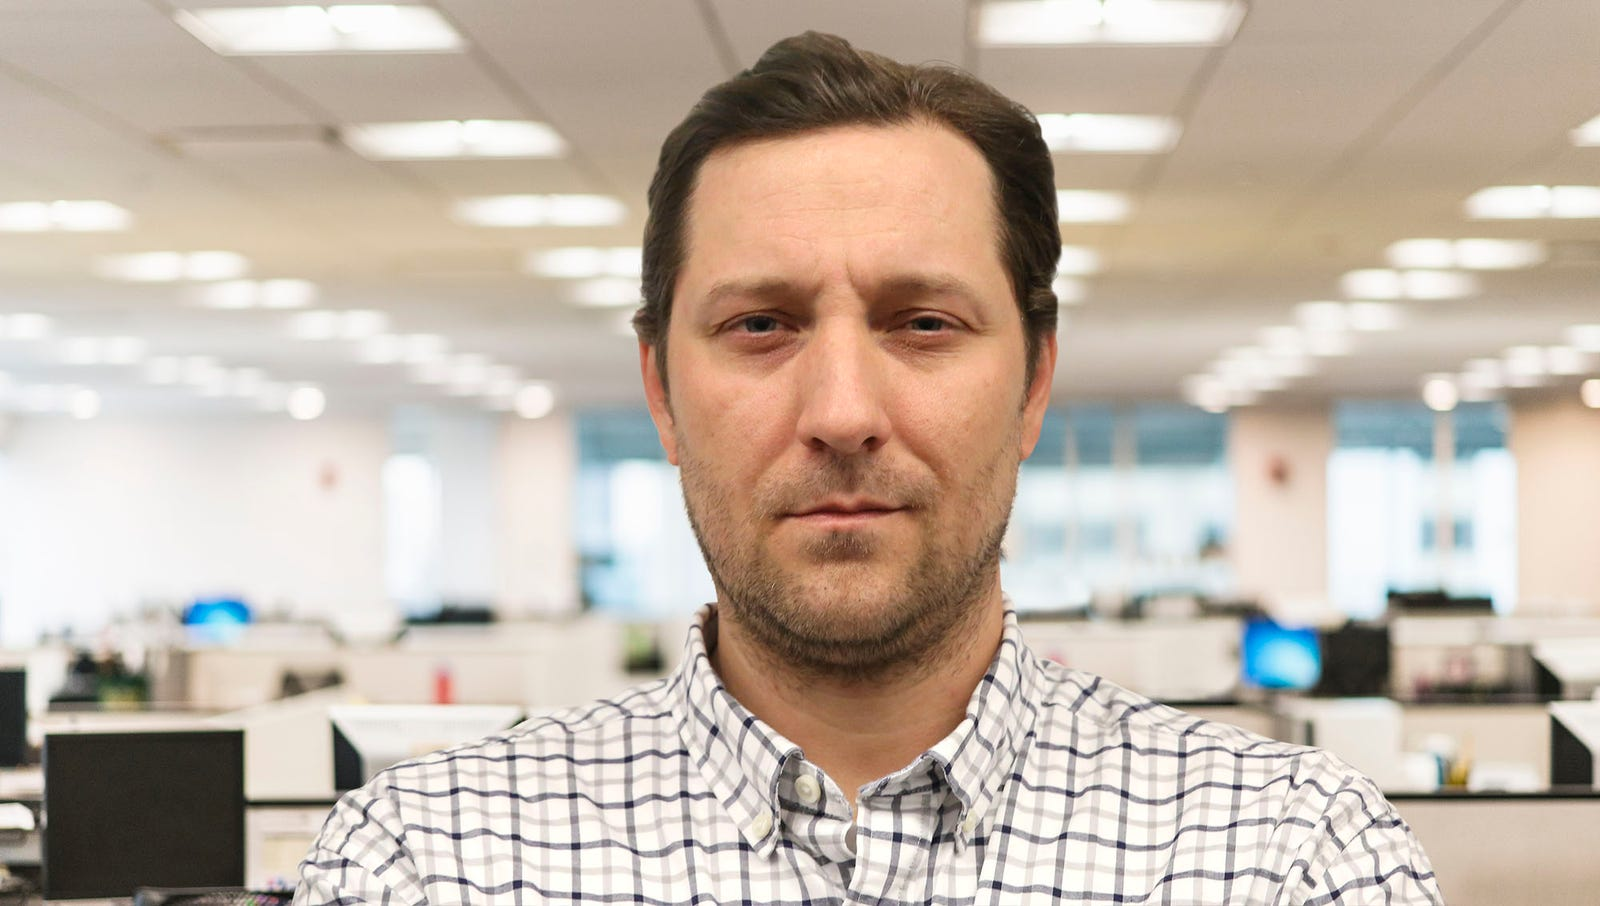 Resourceful Man Able To Cobble Together Bad Mood From Handful Of Minor Annoyances